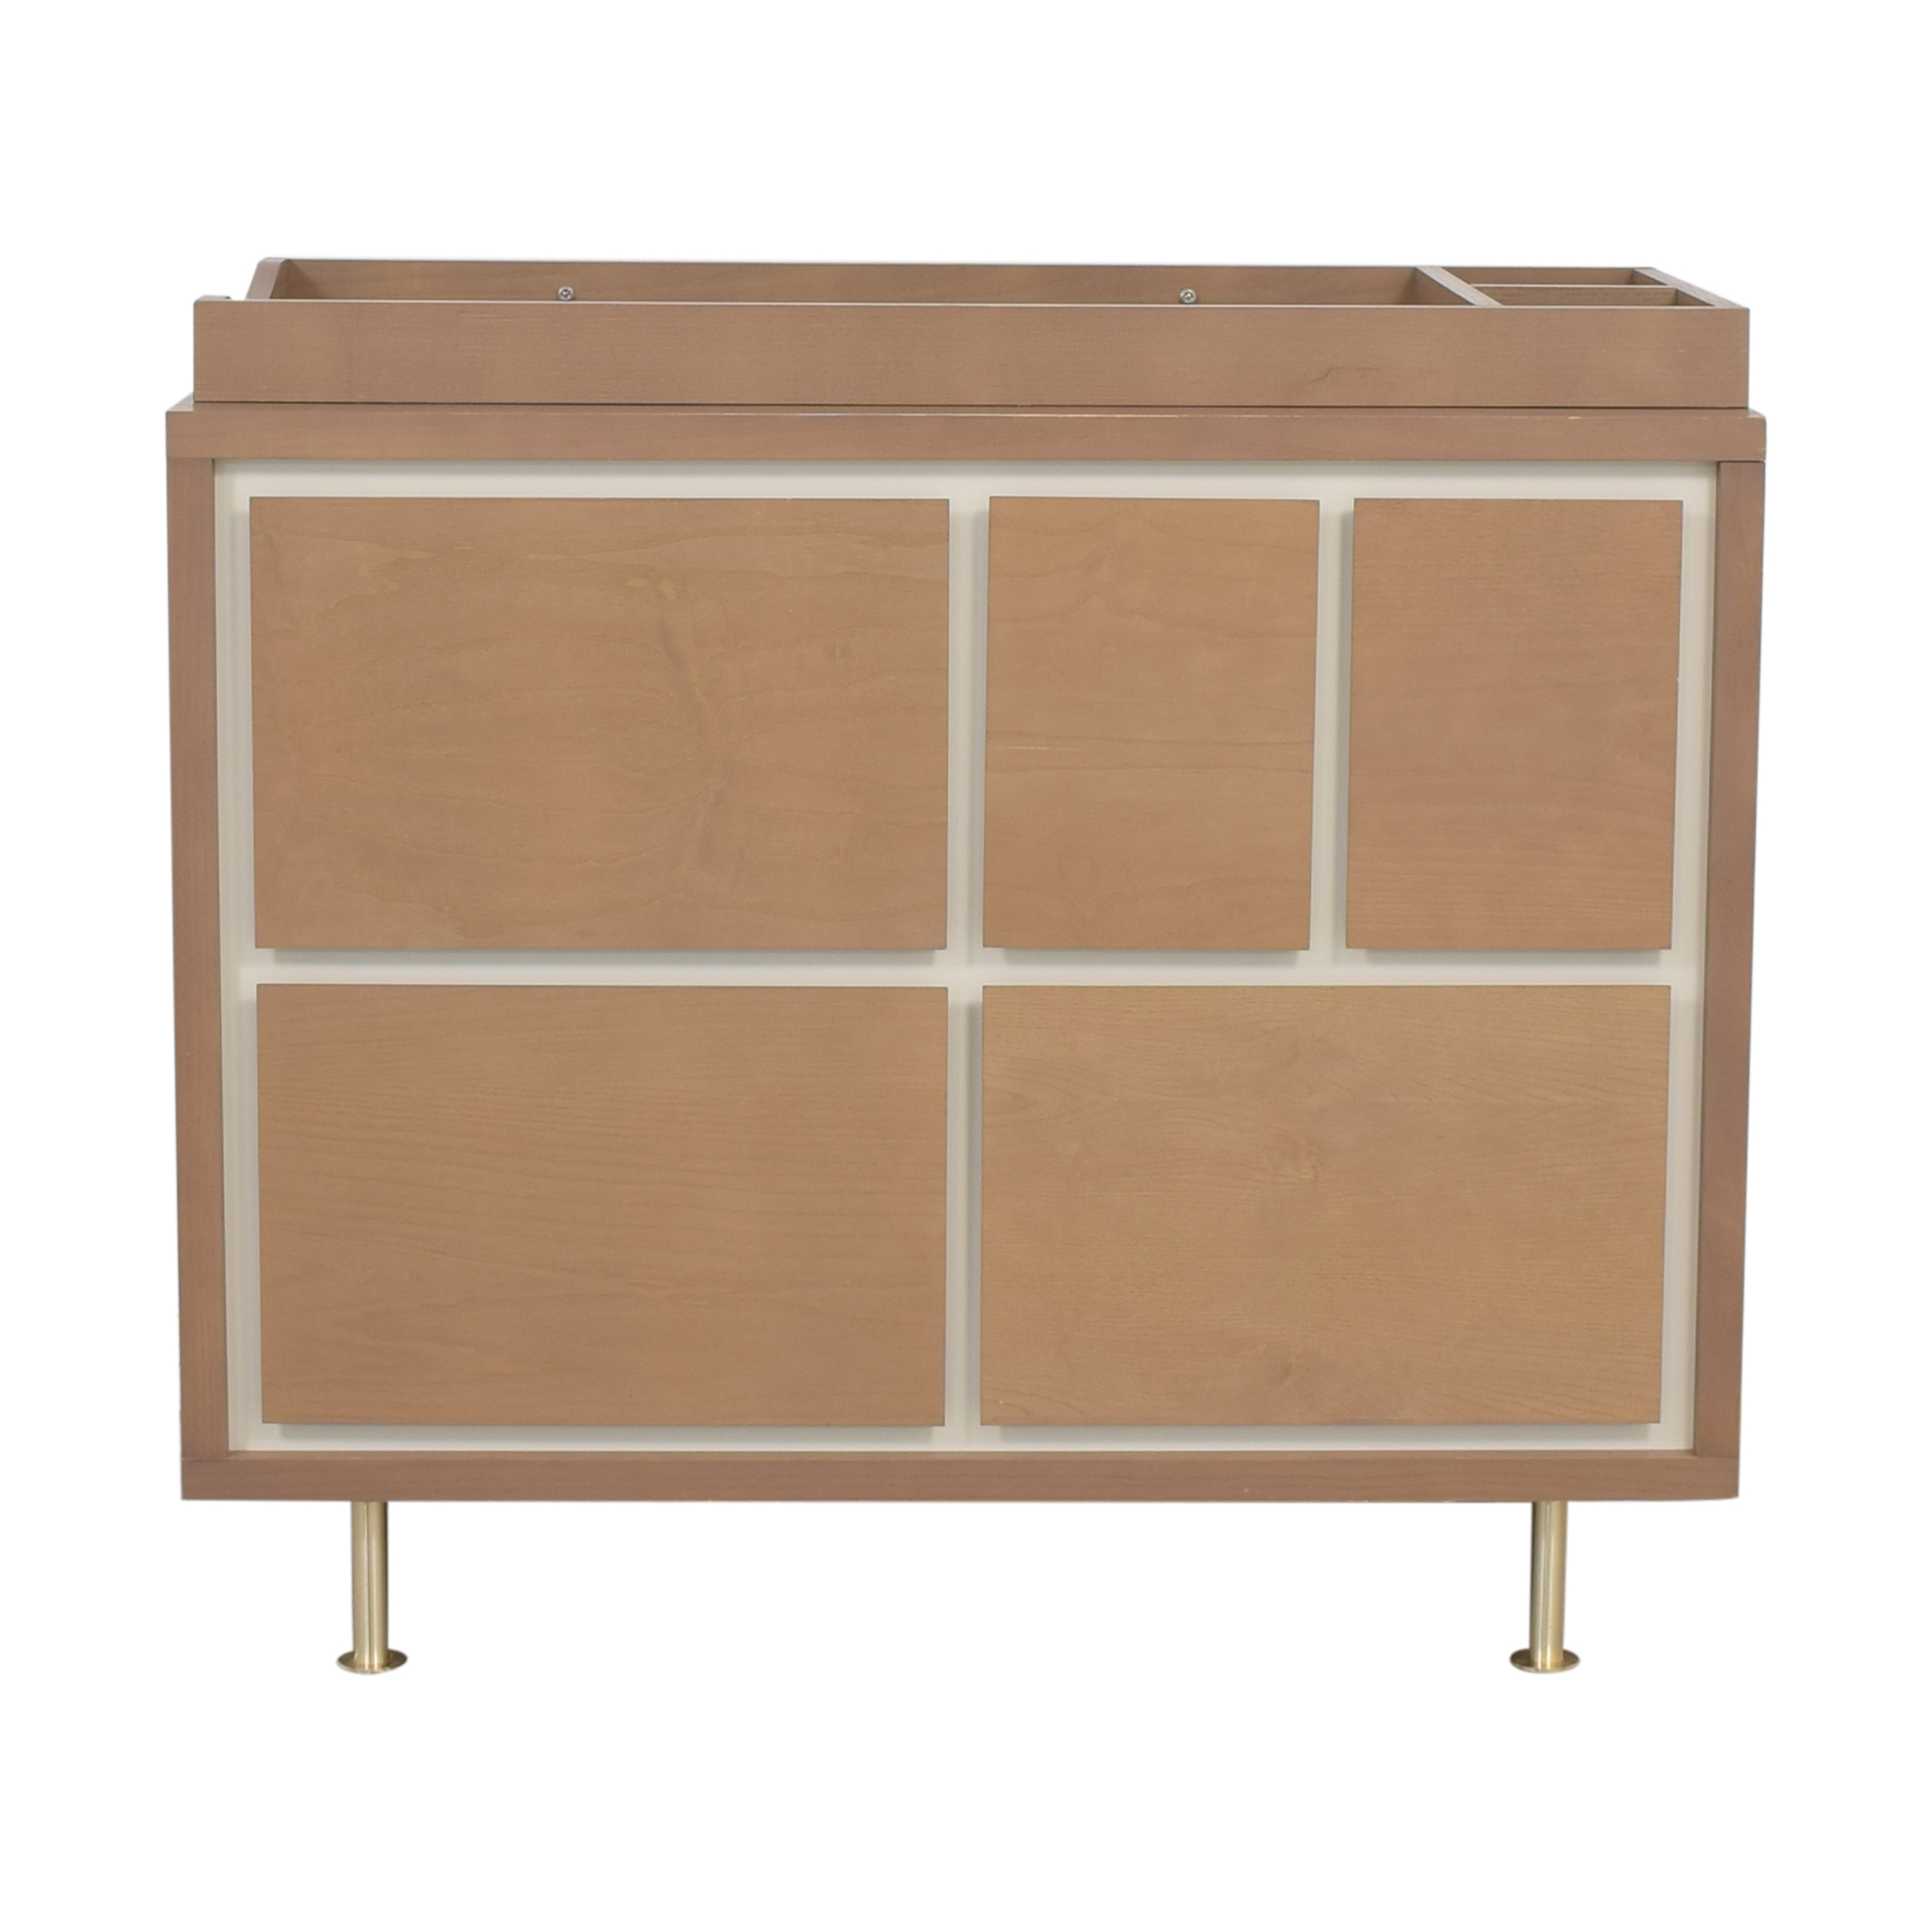 Nursery Works Nursery Works Novella Five Drawer Dresser with Changing Table Dressers